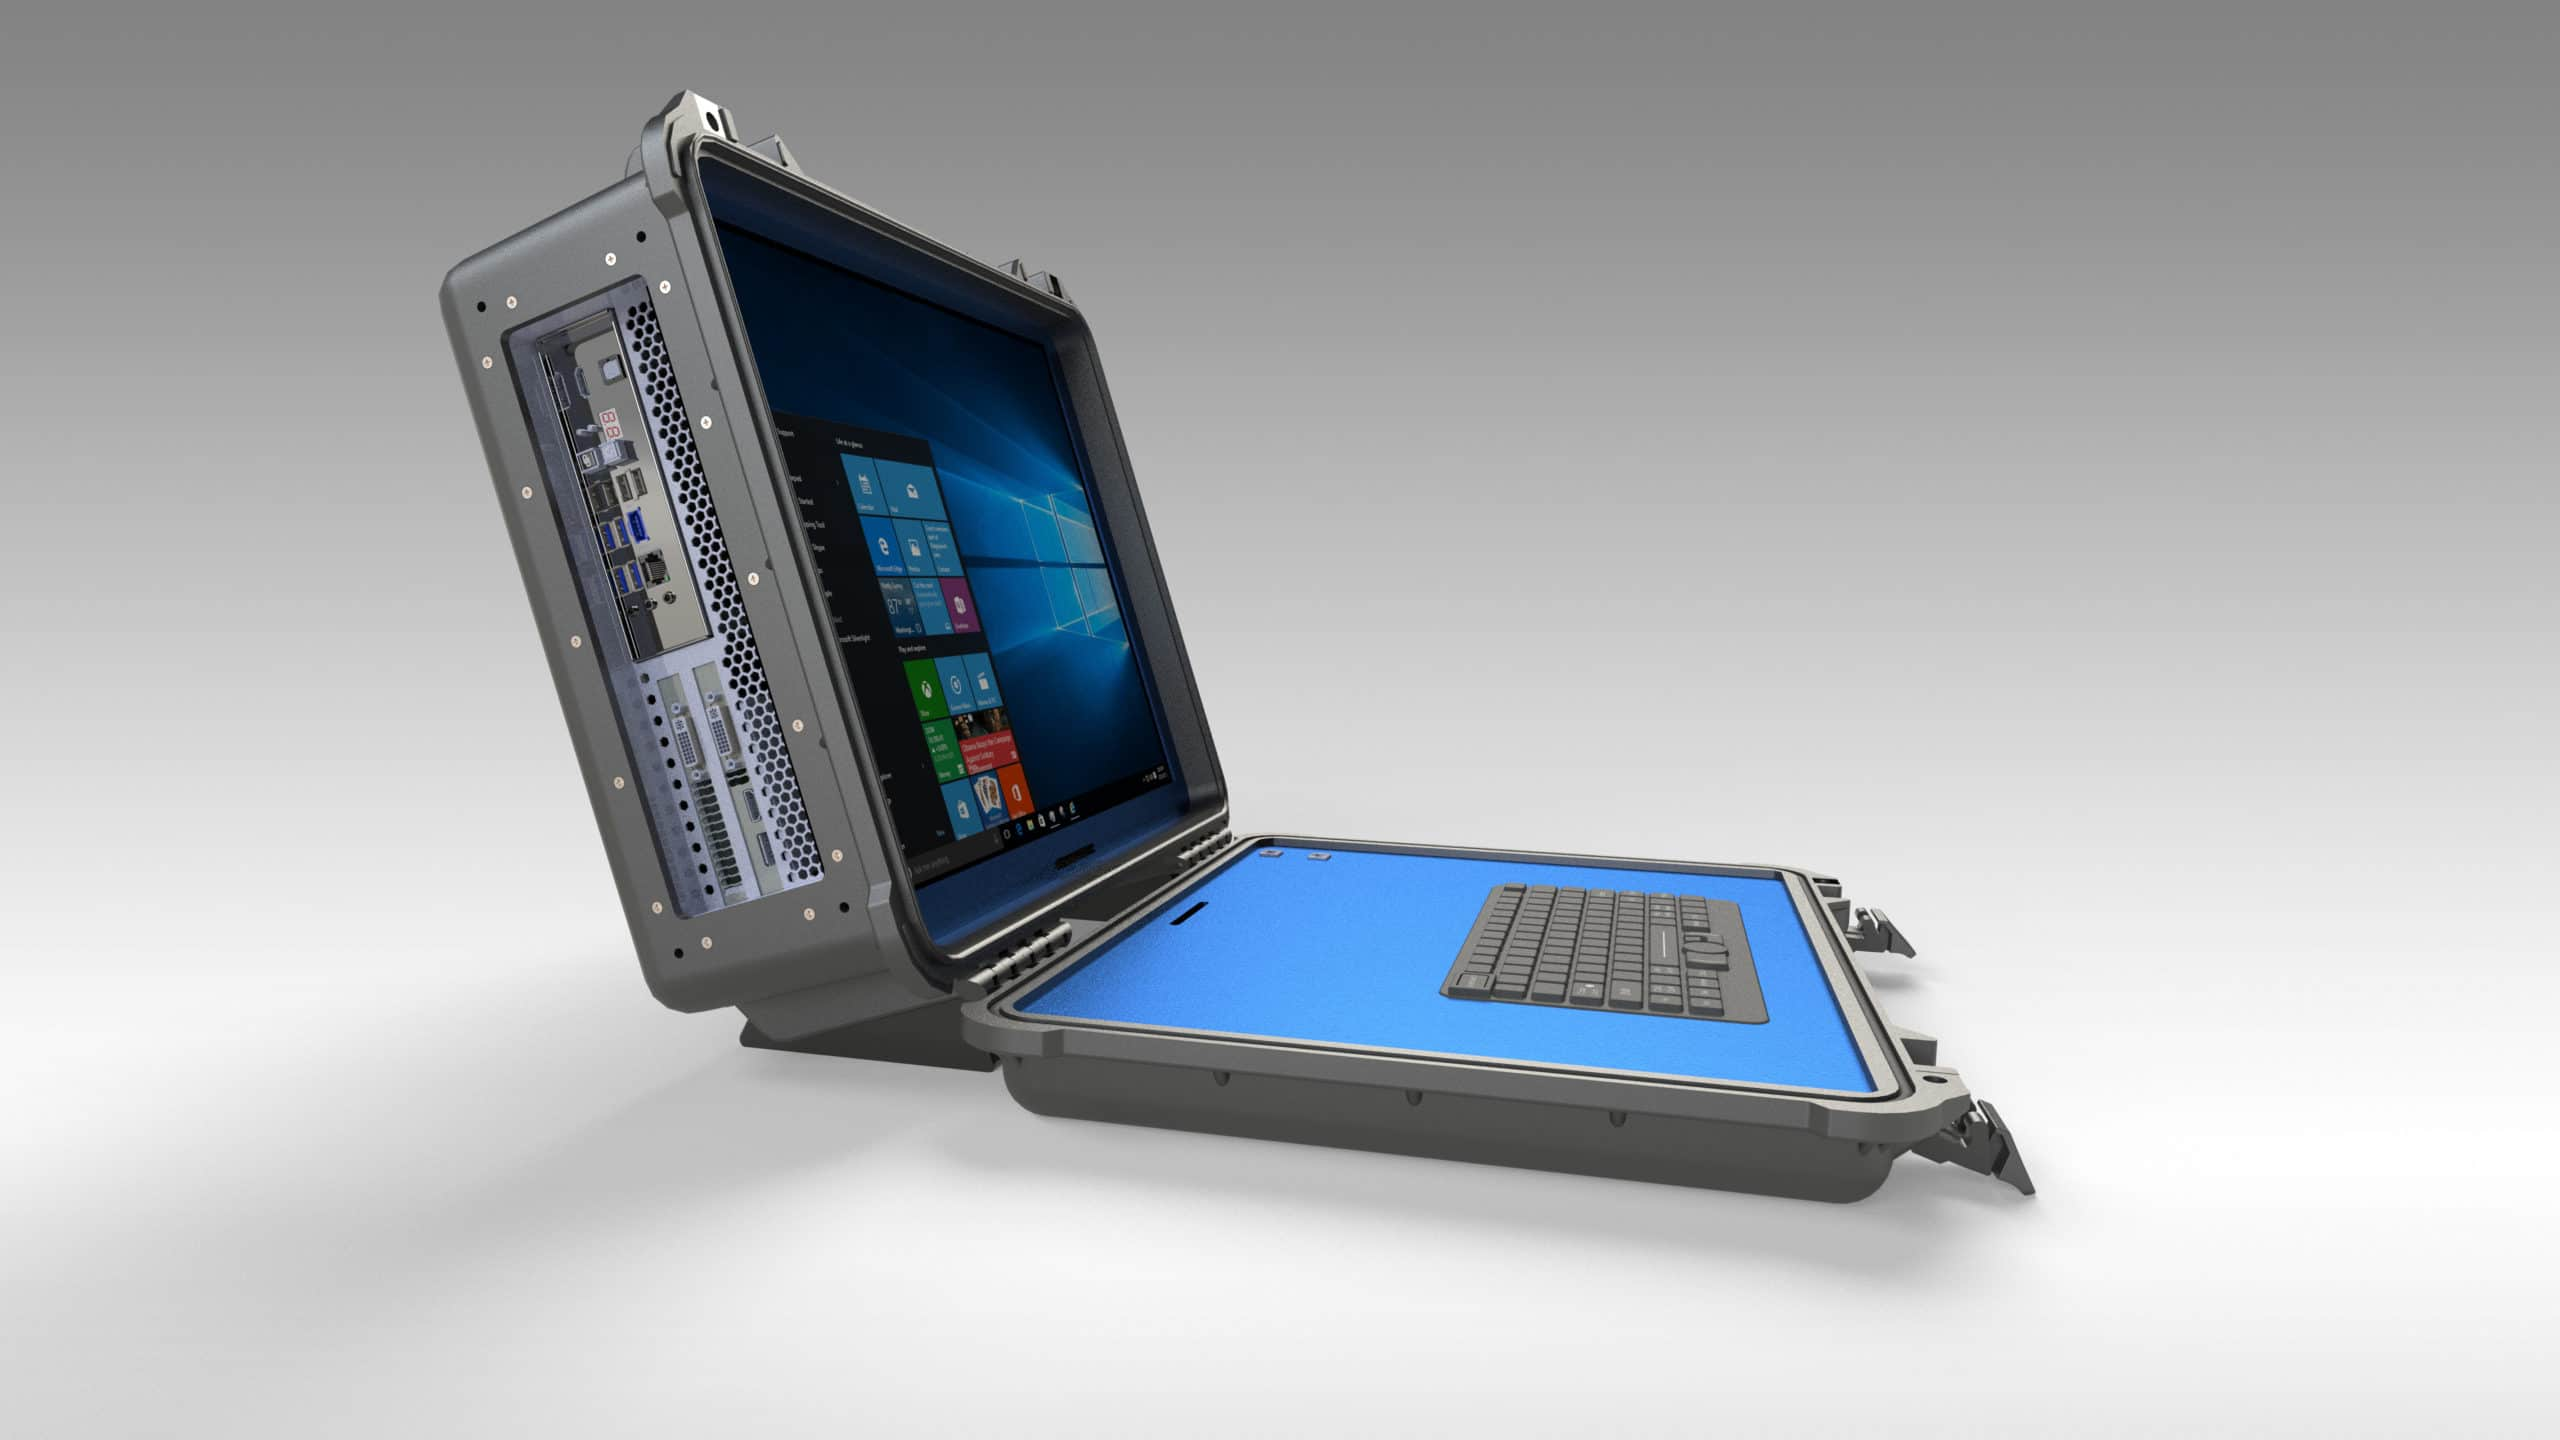 peli case pc 5